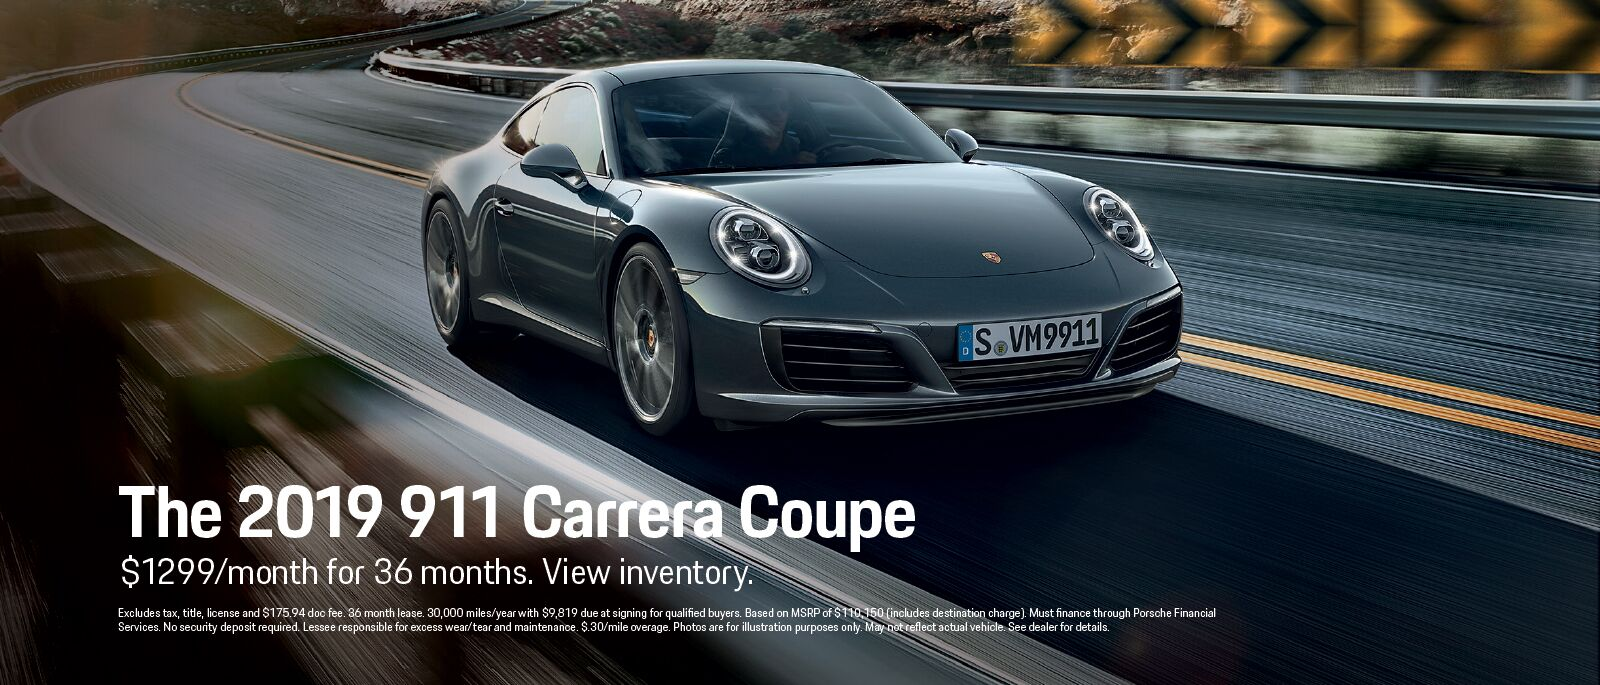 The 2019 911 Carrera Coupe